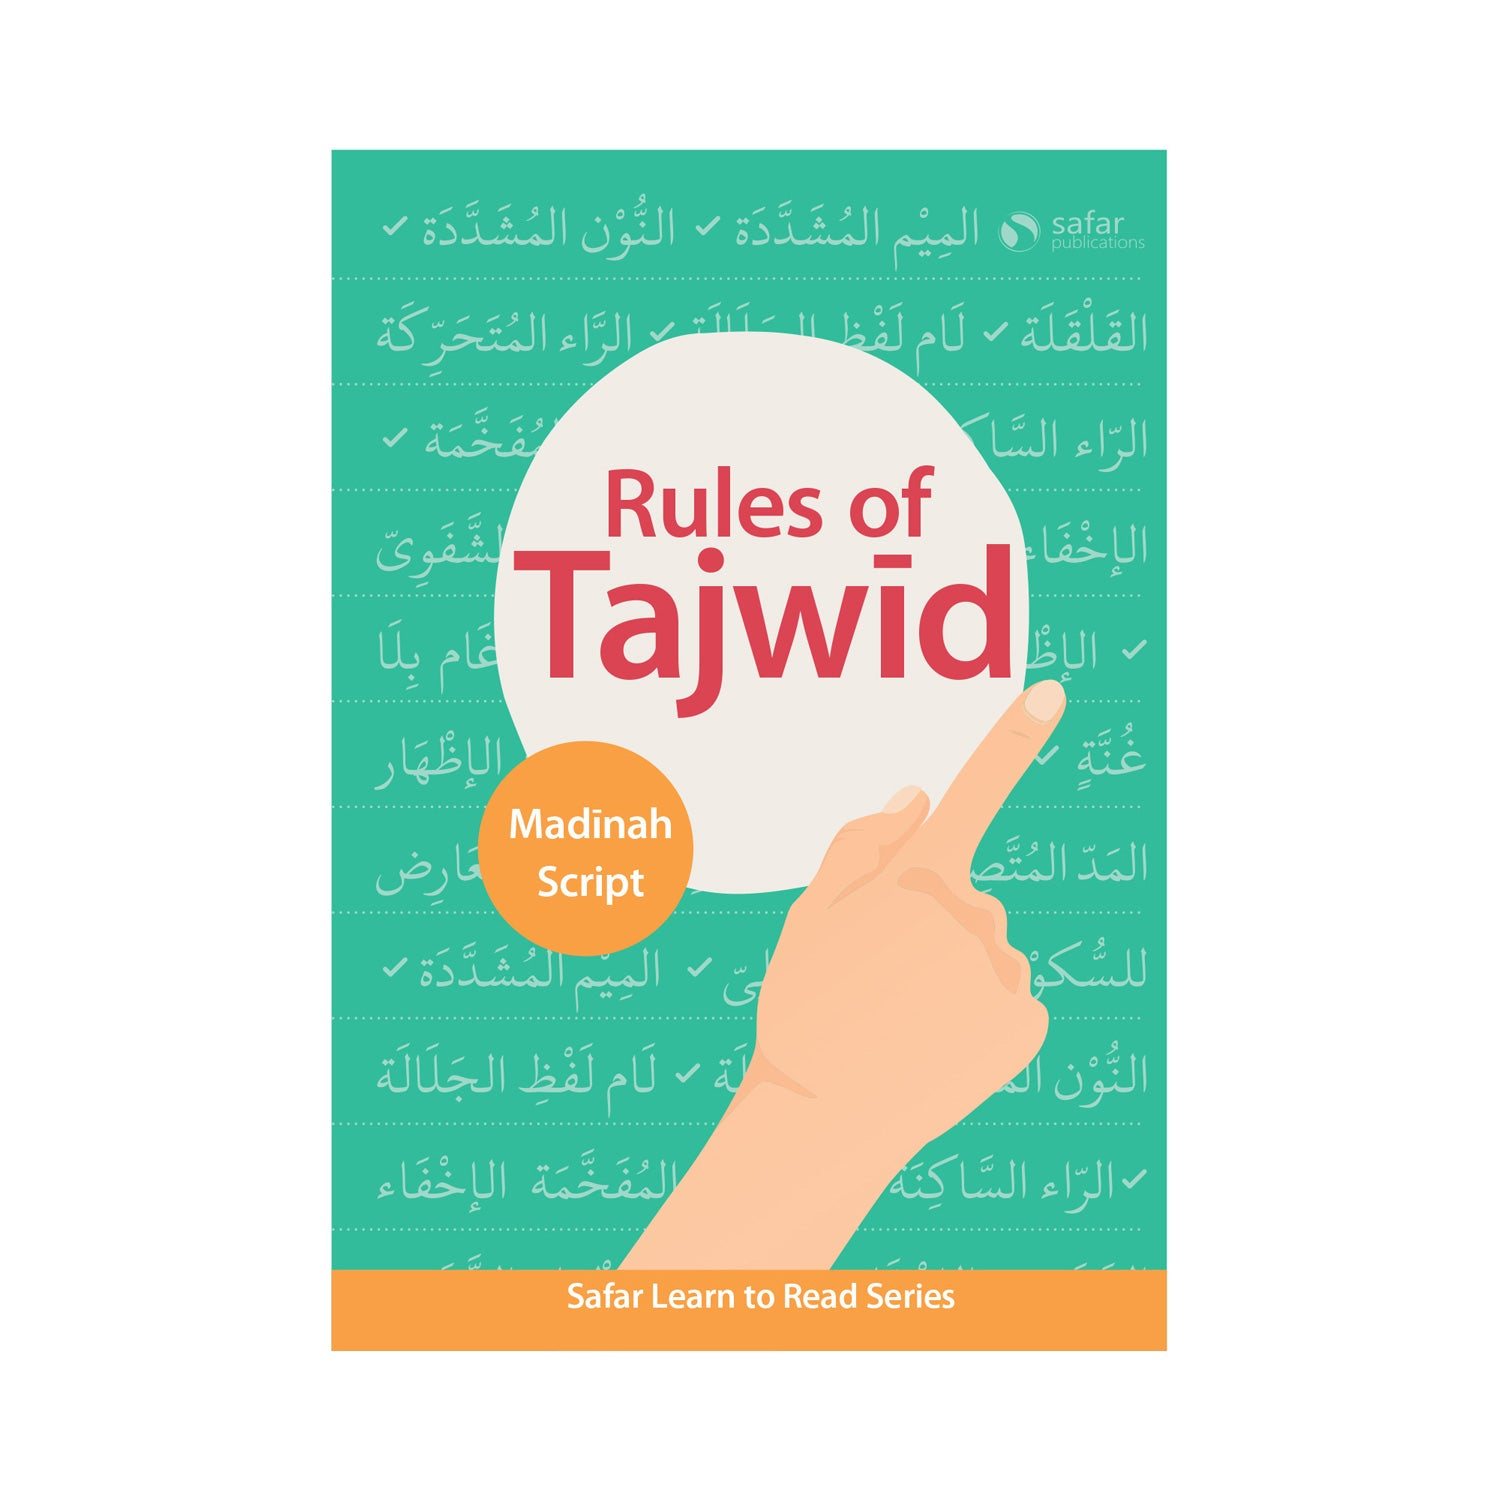 Rules of Tajwid – Learn to Read Series by Safar (Madinah Script)